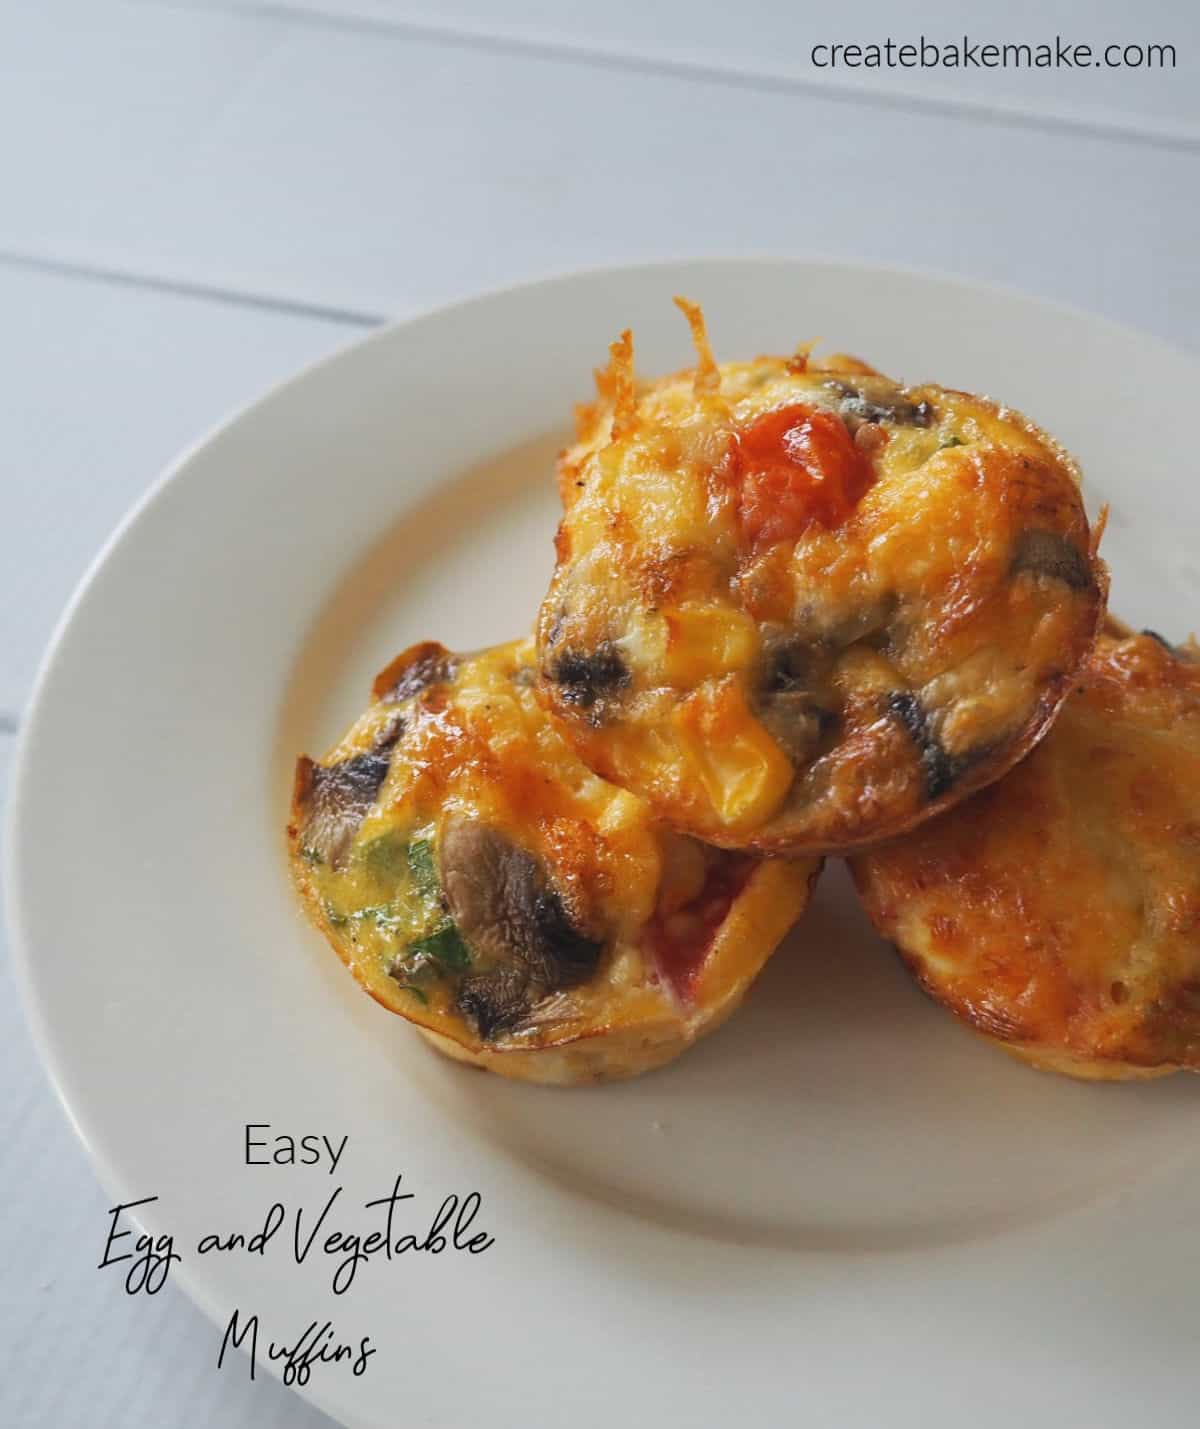 Egg and Vegetable Muffins top side view